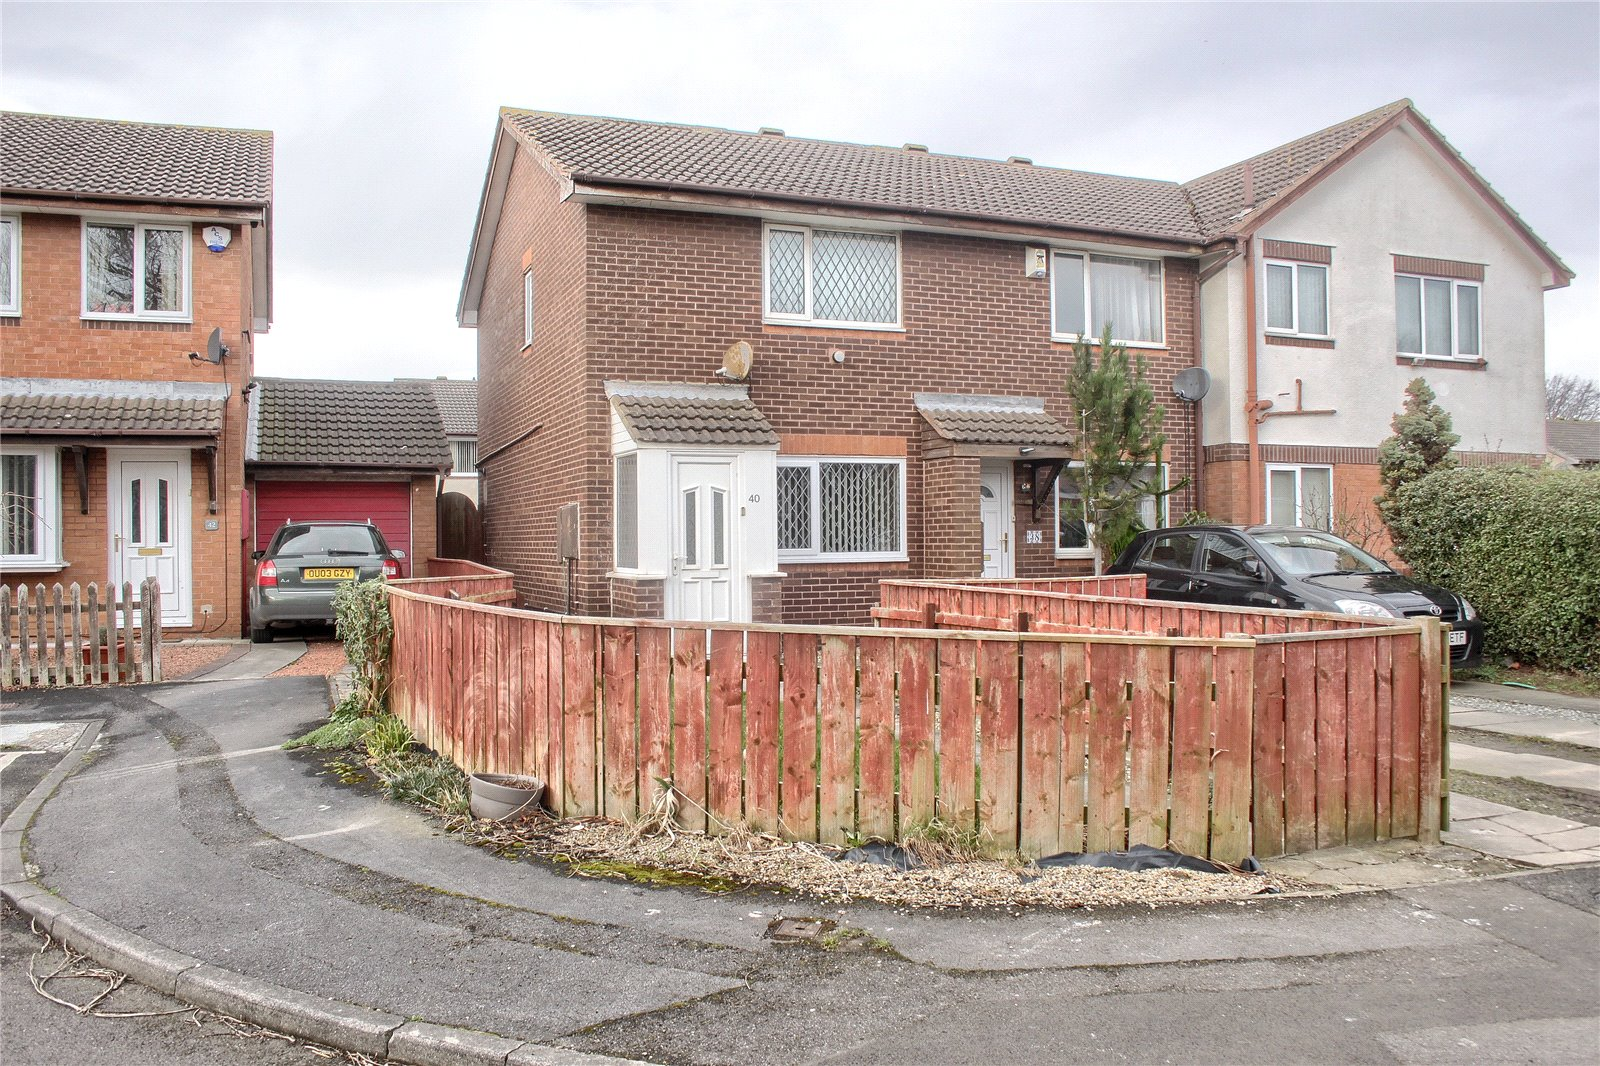 2 bed house for sale in Coppice Road, Middlesbrough 1